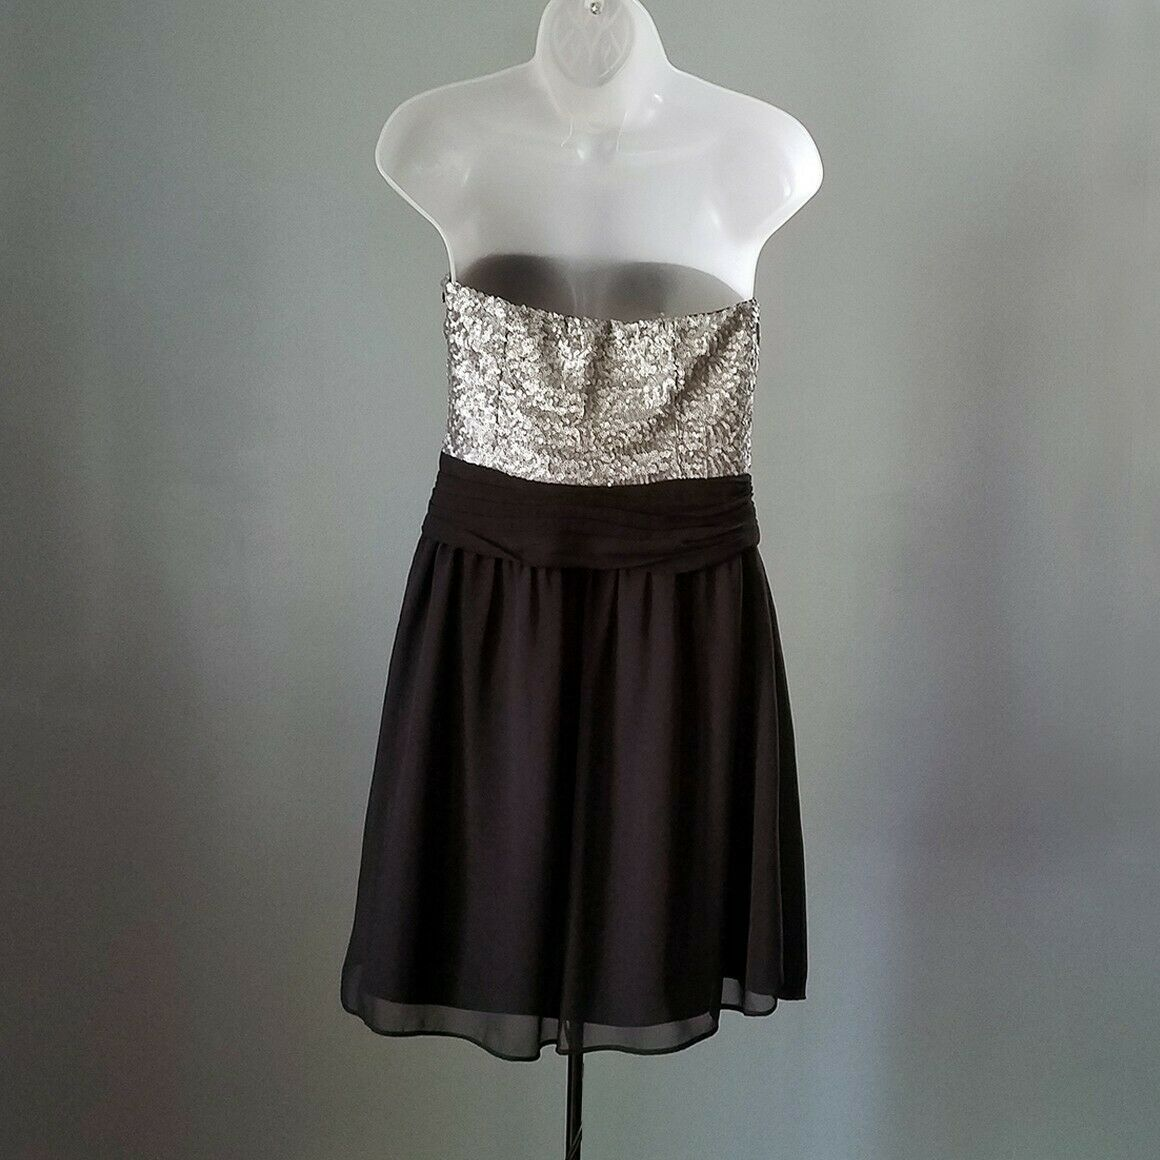 Express Silver & Black Sequin Strapless Cocktail Dress Size 6 image 5